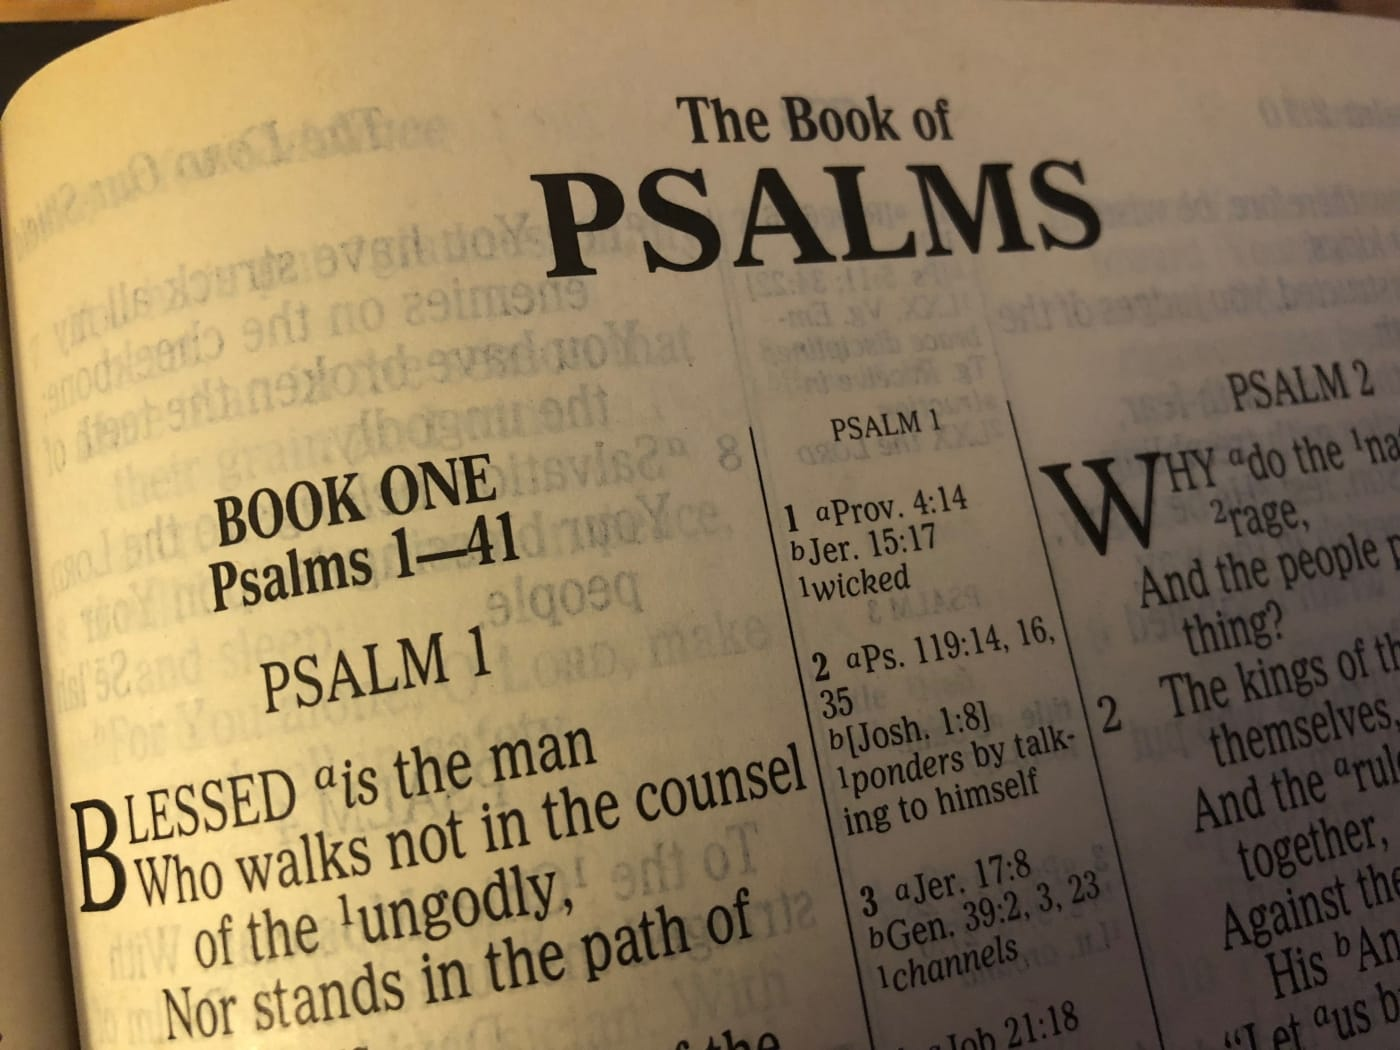 Psalm 8 - The Glory of God in the Face of Christ